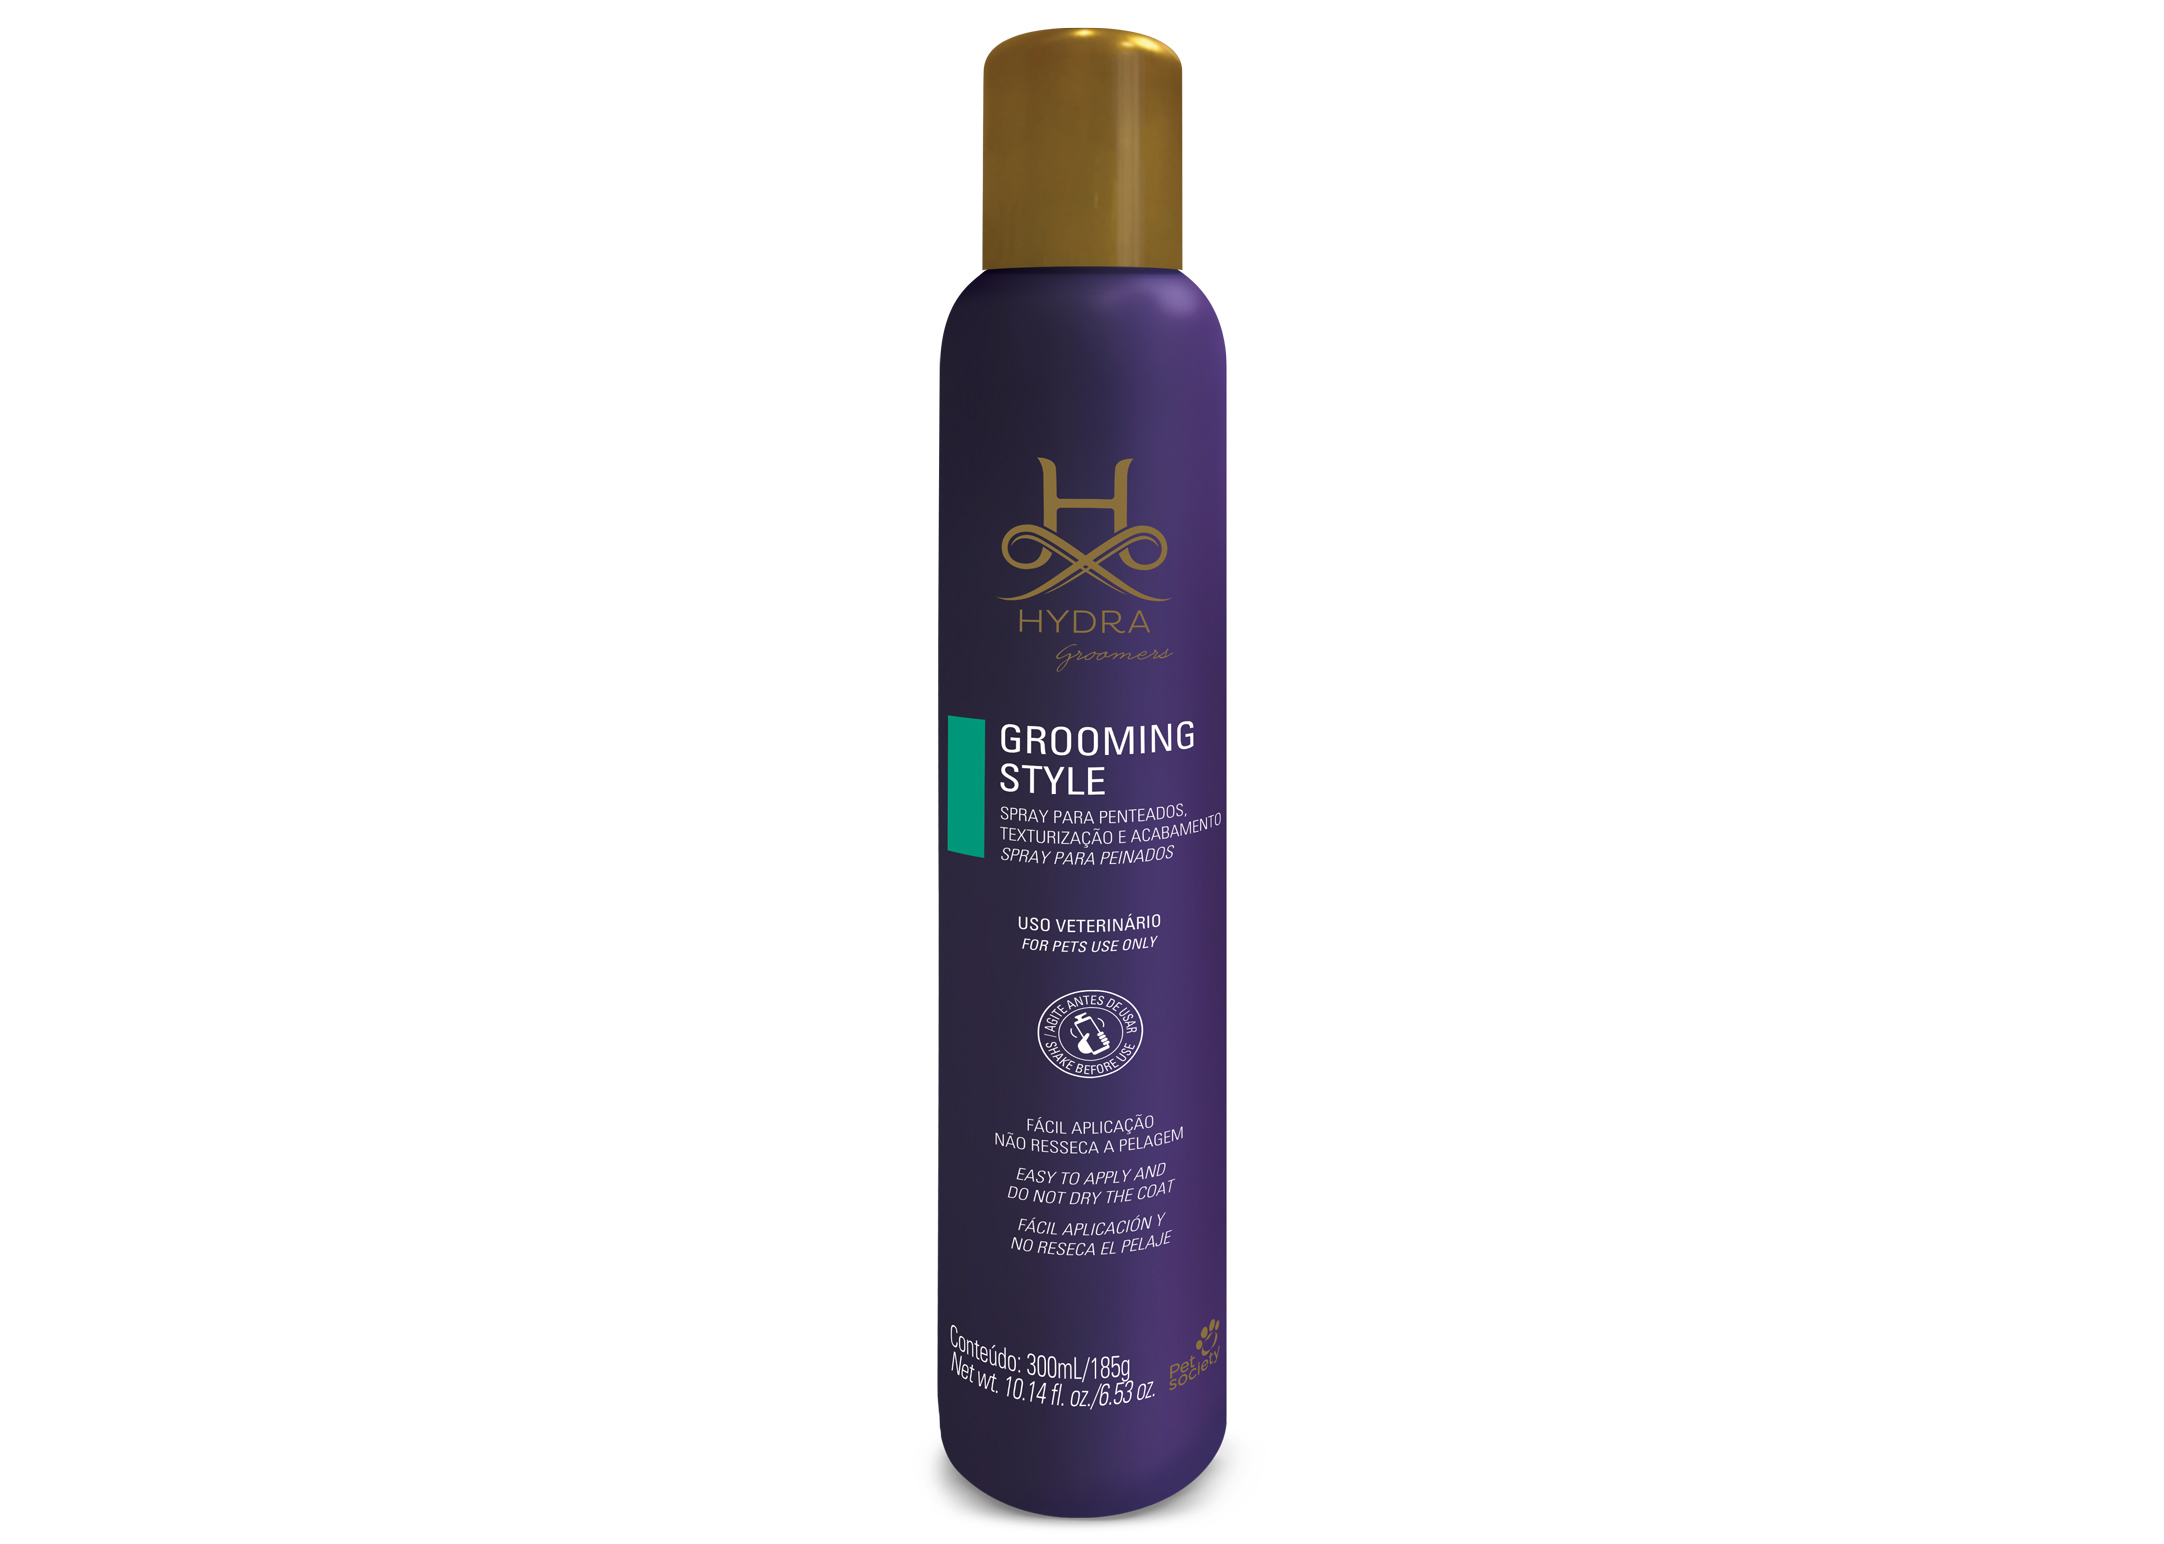 Hydra Grooming Style Spray 300 ml - Styling spray